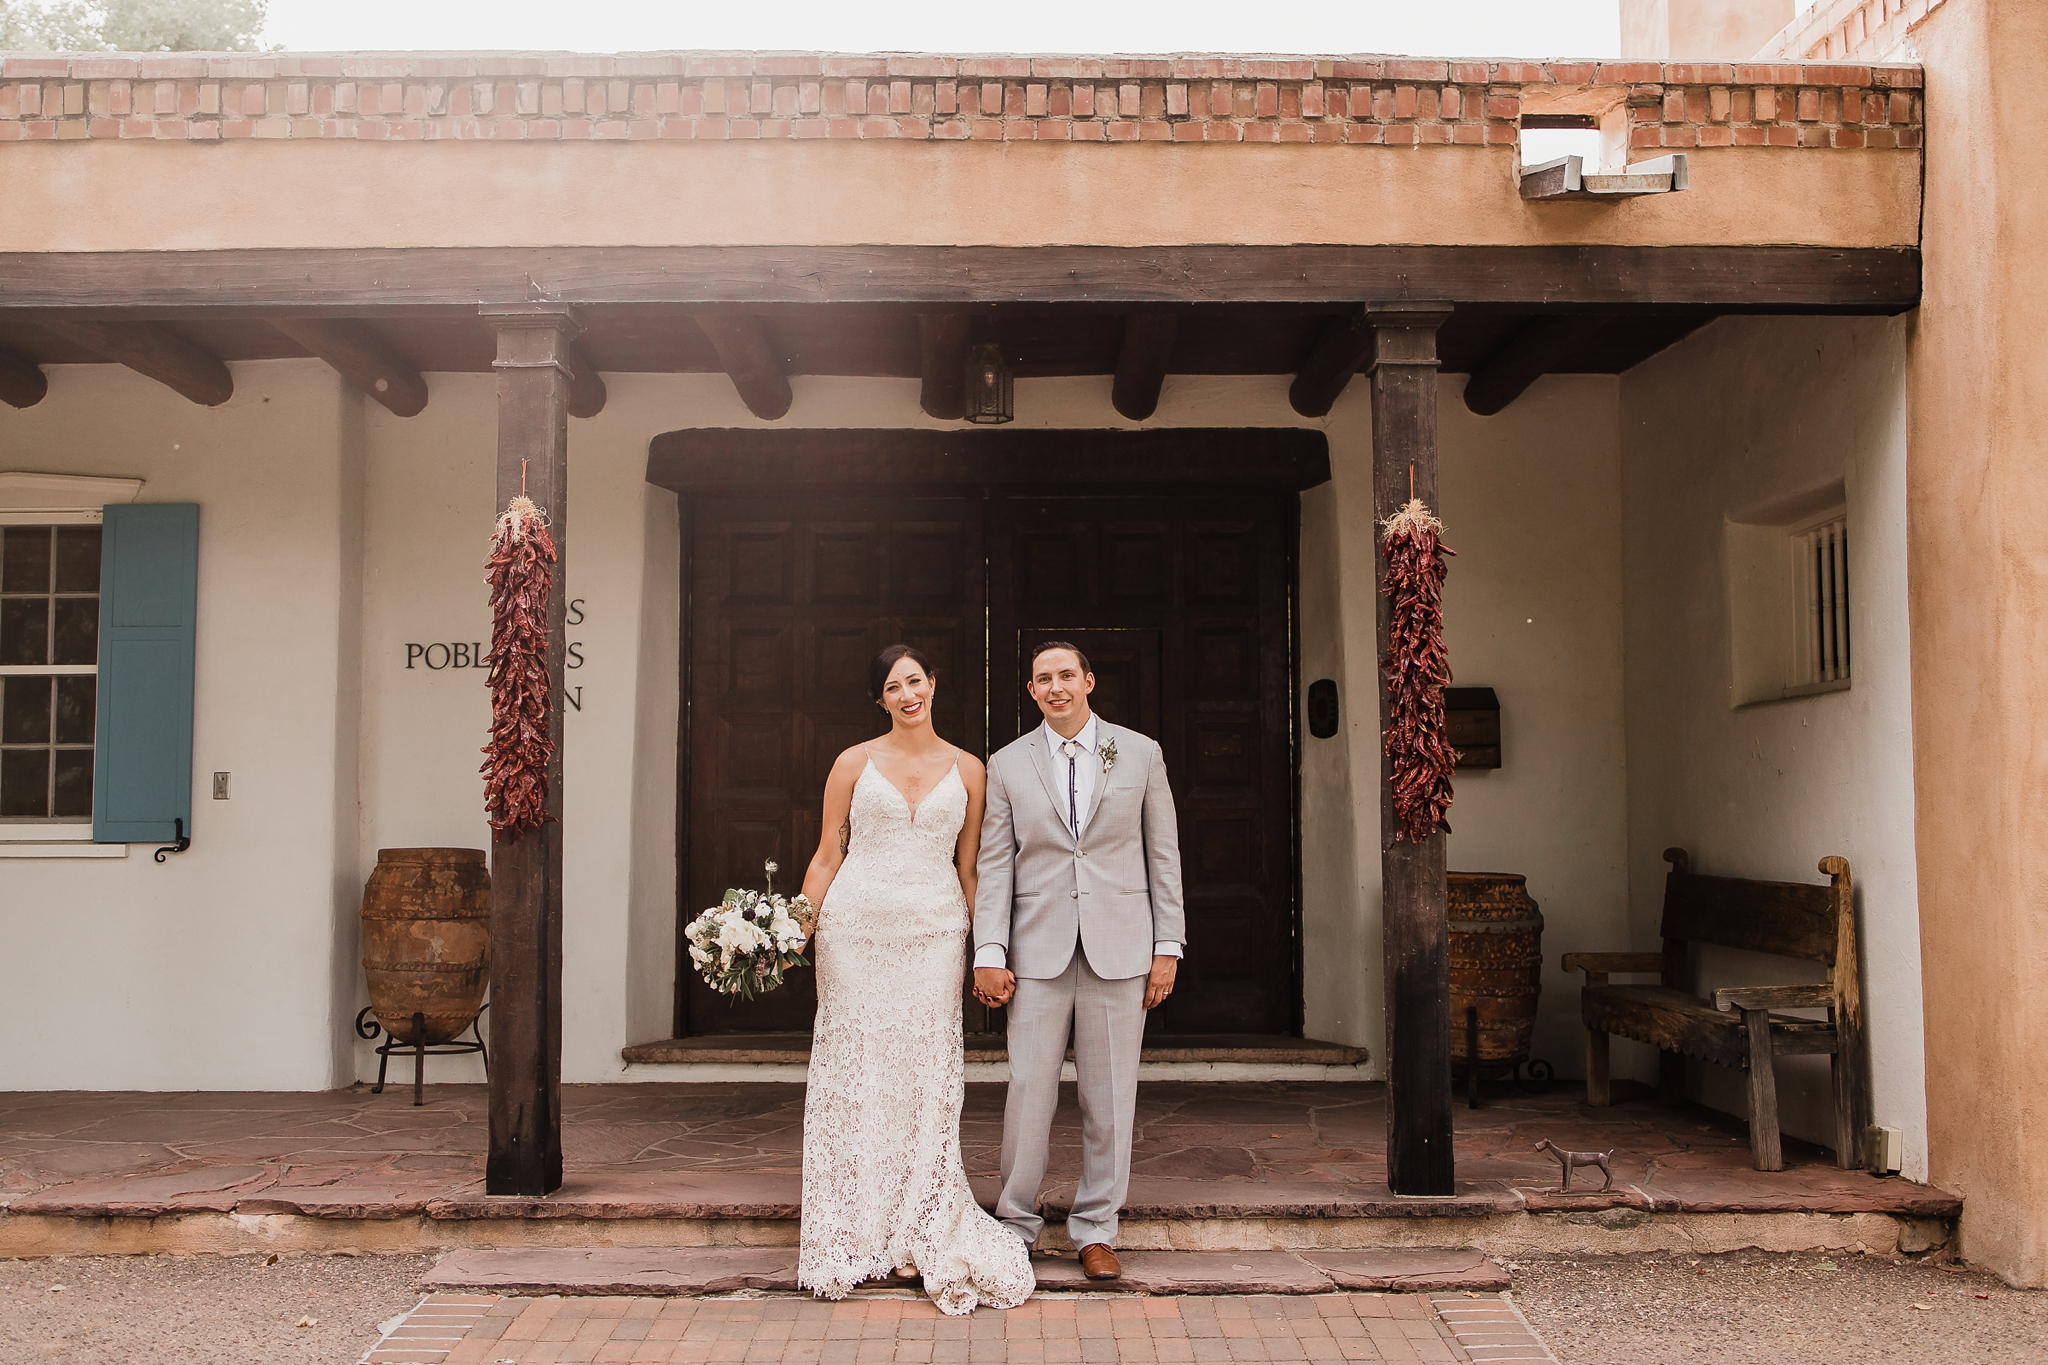 Alicia+lucia+photography+-+albuquerque+wedding+photographer+-+santa+fe+wedding+photography+-+new+mexico+wedding+photographer+-+new+mexico+wedding+-+new+mexico+wedding+-+summer+wedding+-+los+poblanos+wedding+-+colorado+bride_0084.jpg